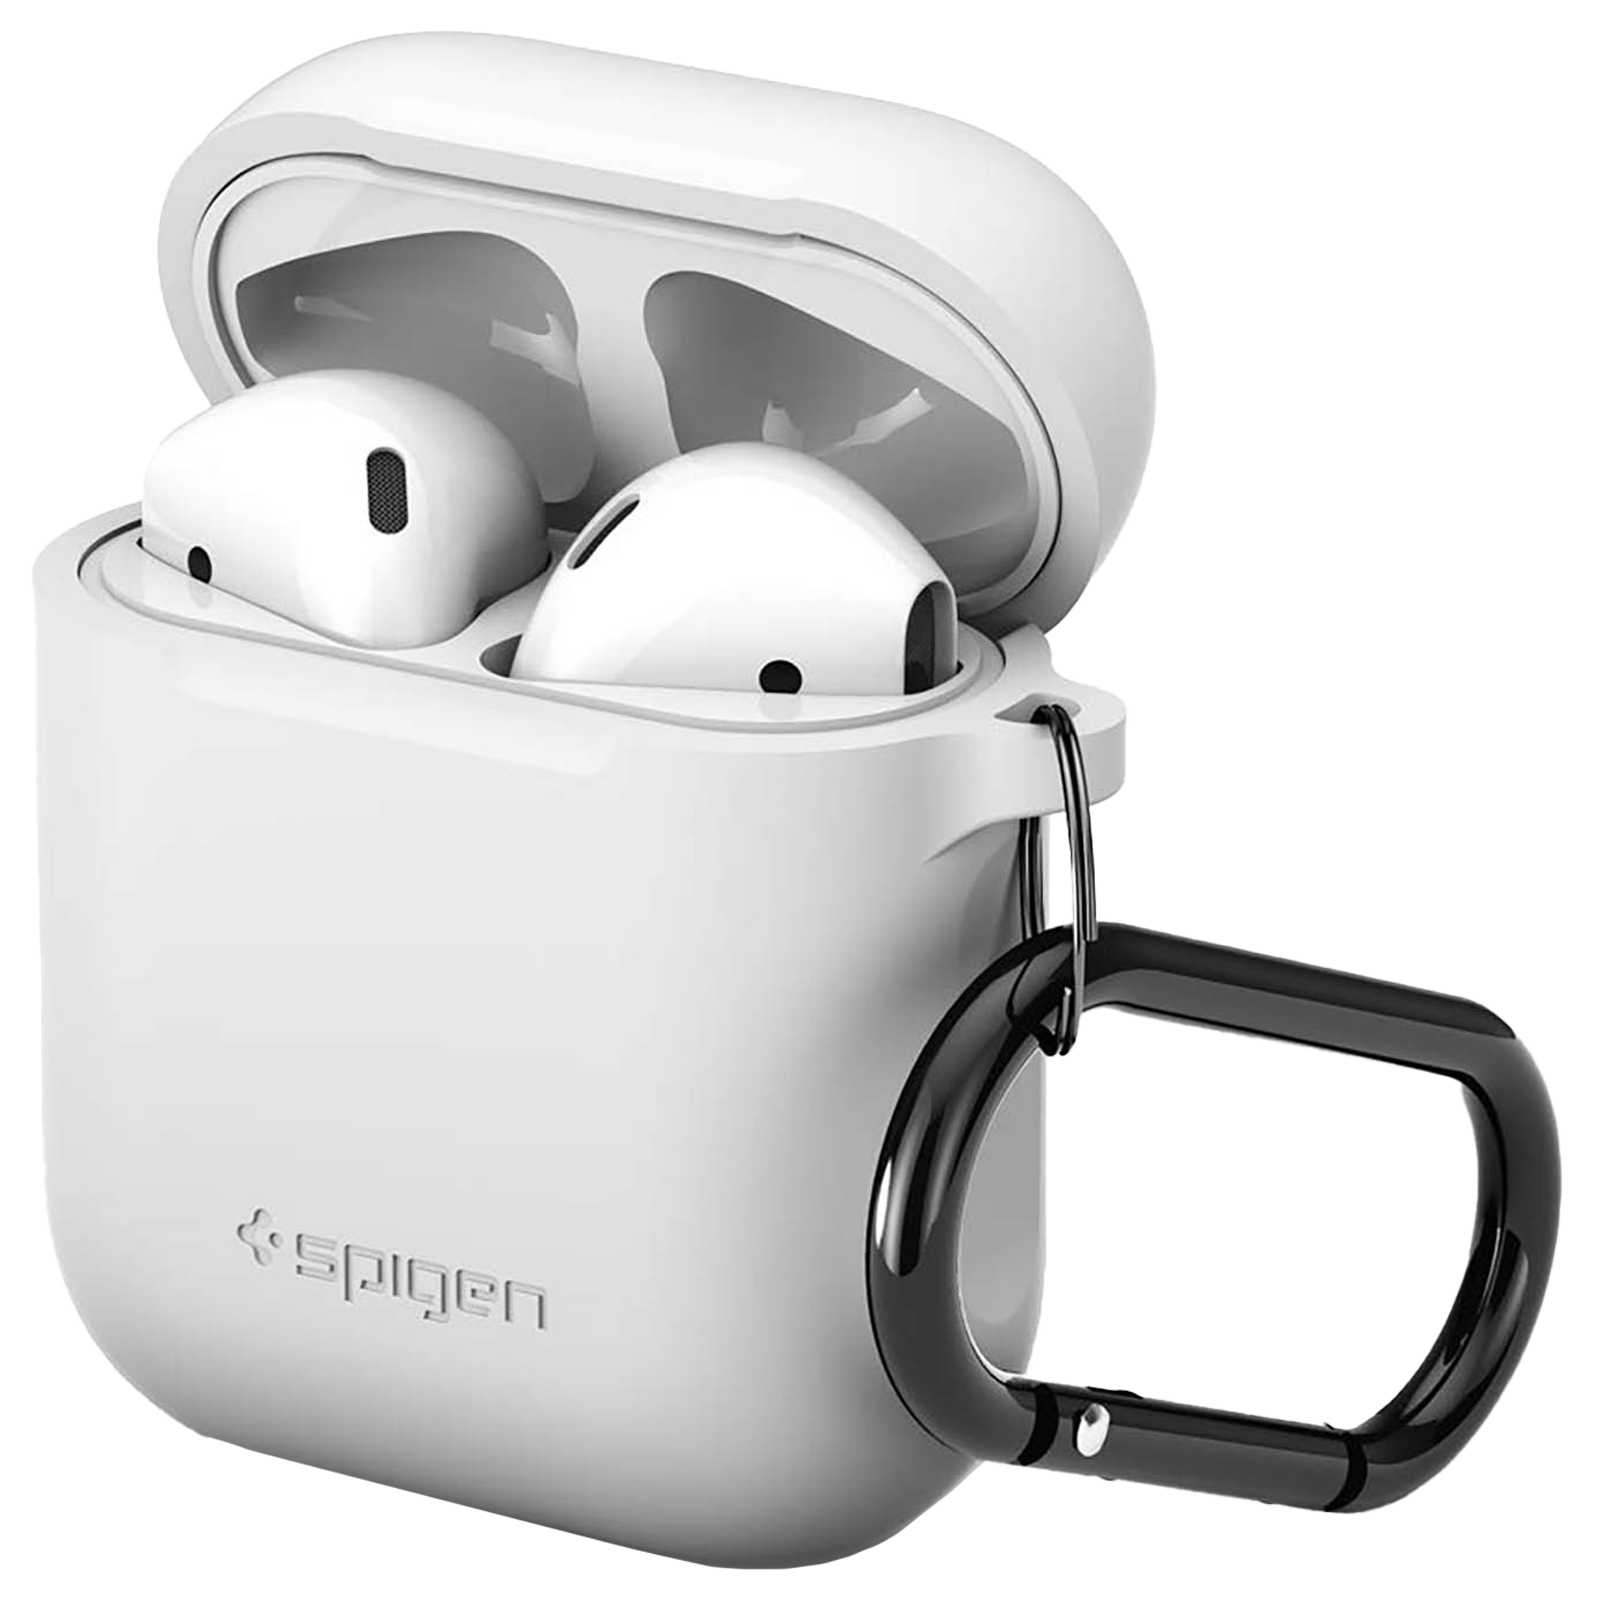 Spigen Silicone Fit Full Cover Case (For Airpods 2, 066CS24809, White)_1